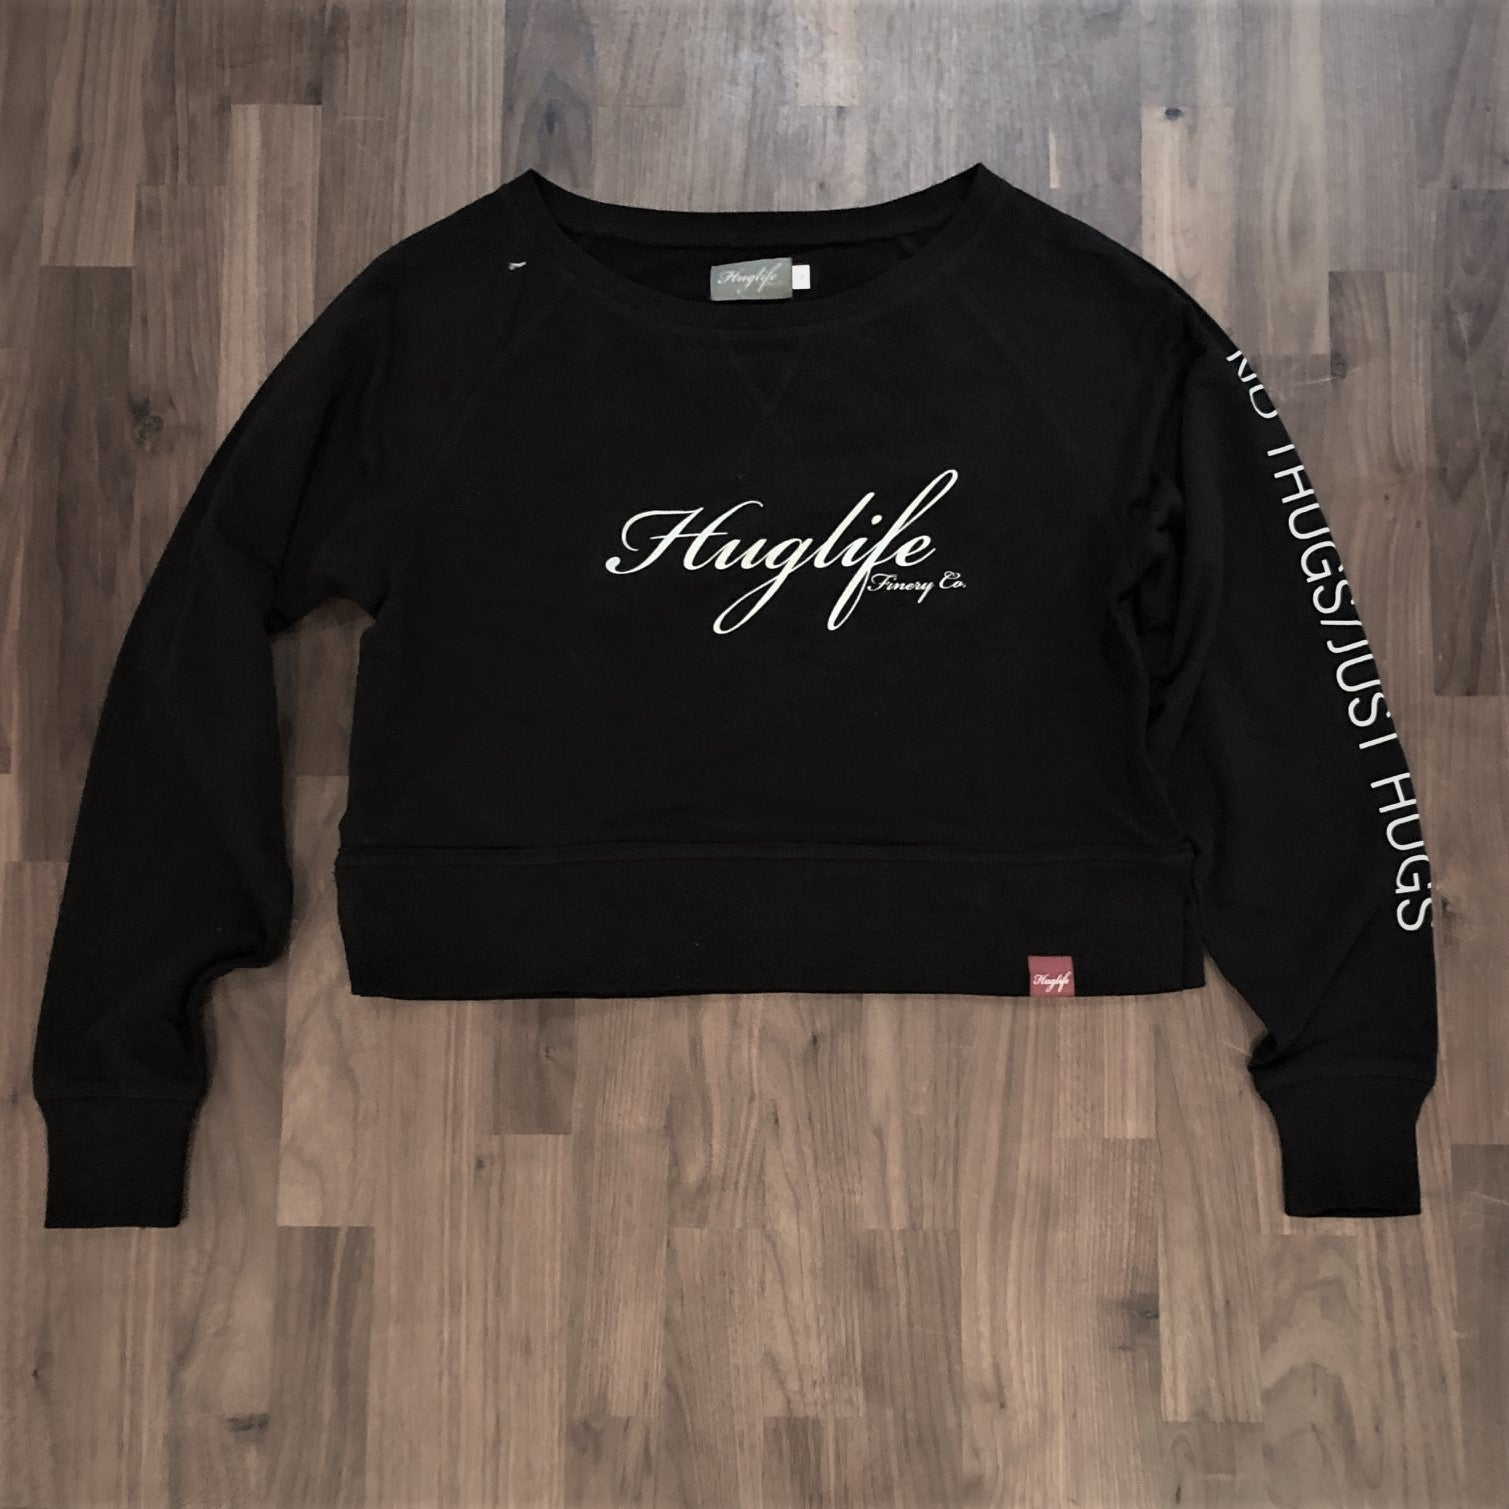 The Genny / Women's Crop Crewneck / Classic Huglife Front / No Thugs Just Hugs Arm